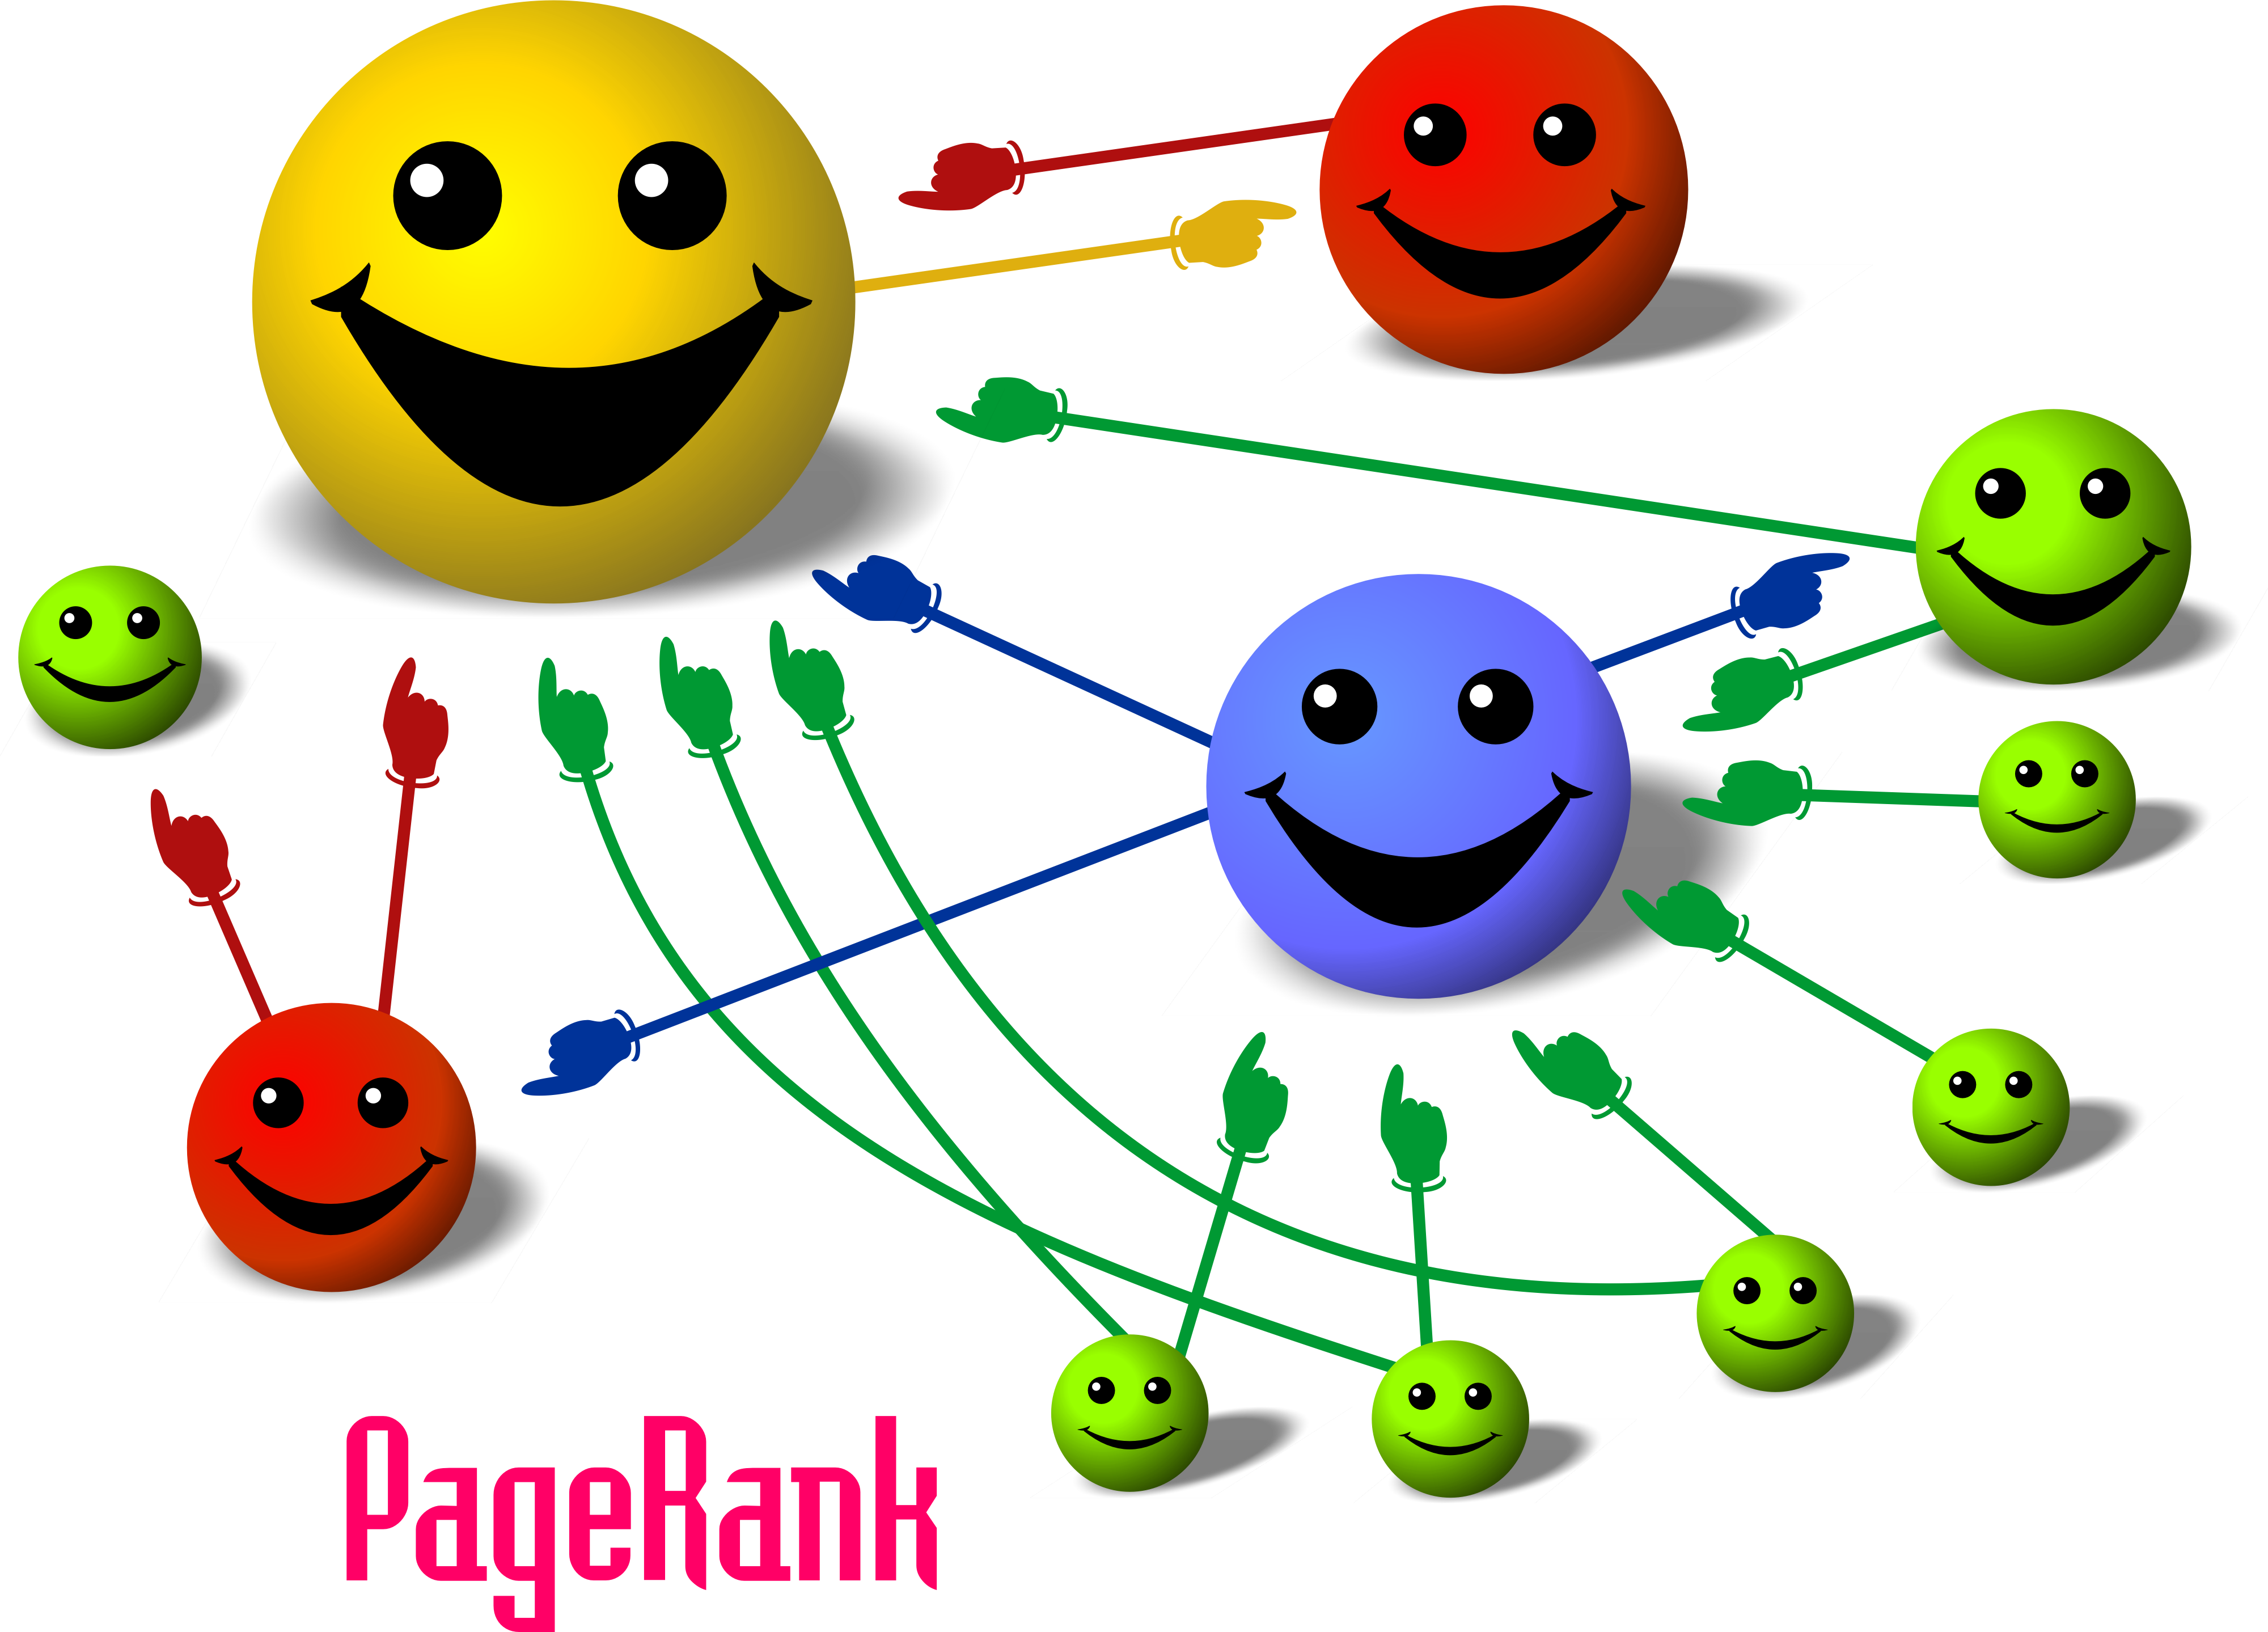 A UK search engine wants PageRank algorithm to be revealed